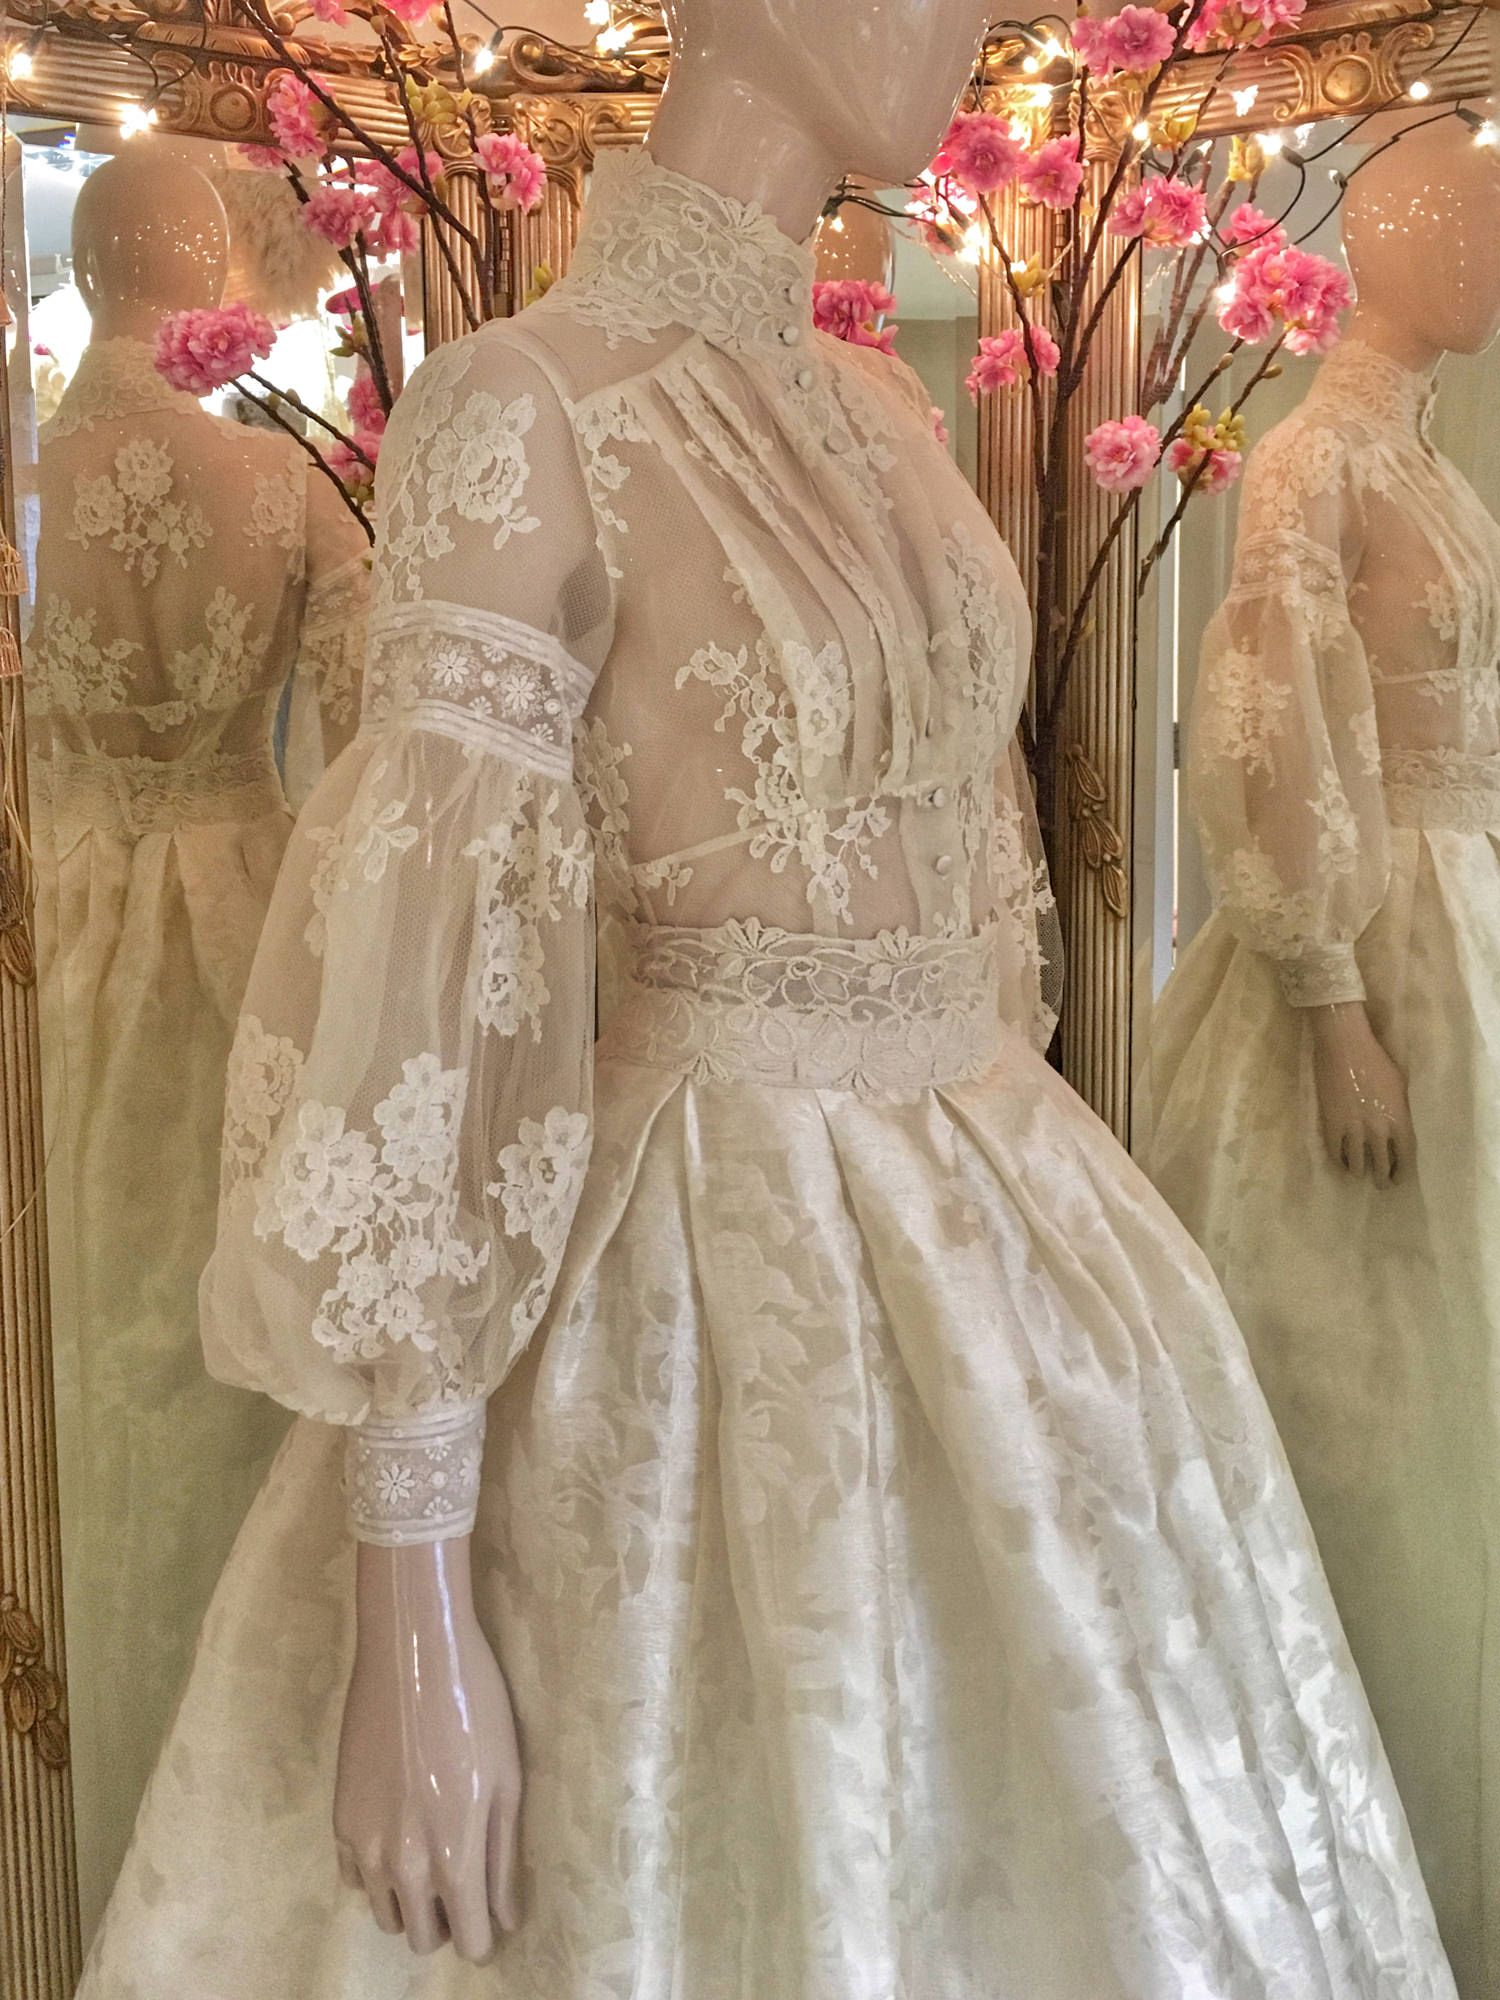 Edwardian lace wedding dress with a high neck blouse and silk skirtJoanne Fleming Design | Blog